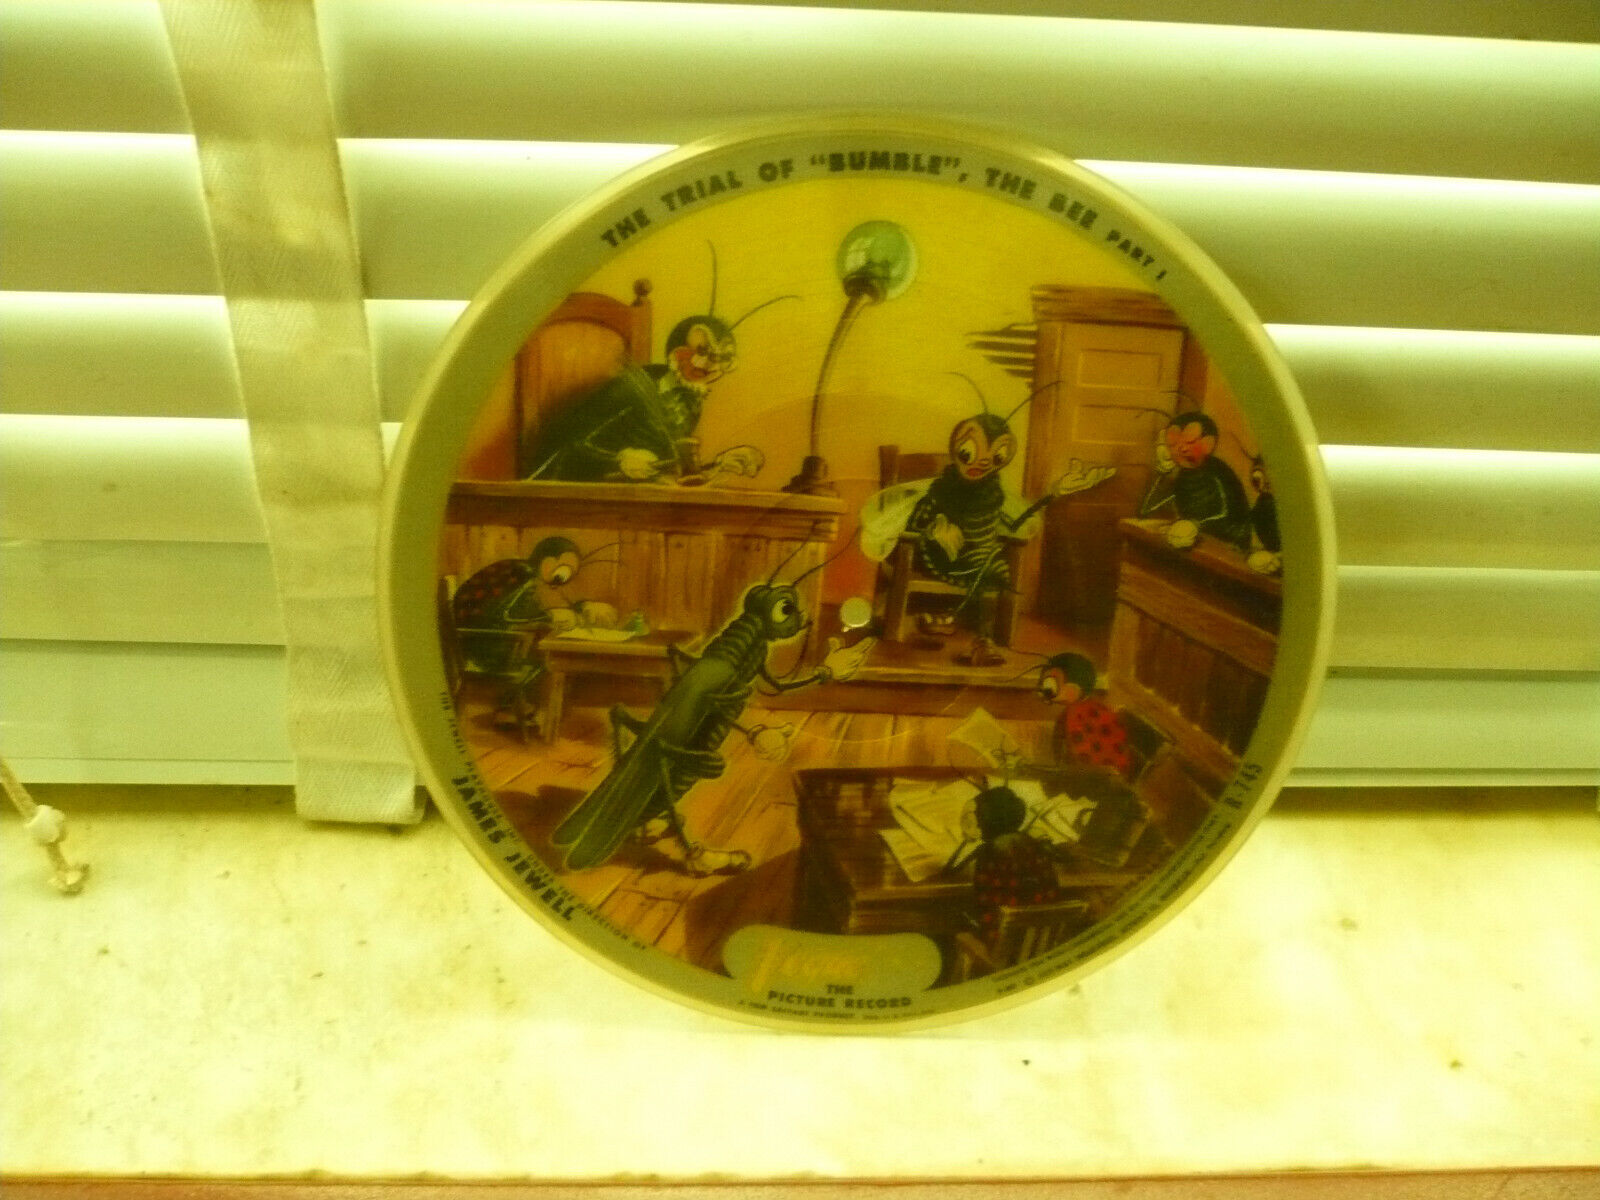 1940 s Vogue Two-sided Picture Record Boy Who Cried Wolf/Trial Of Bumble Bee - $50.00